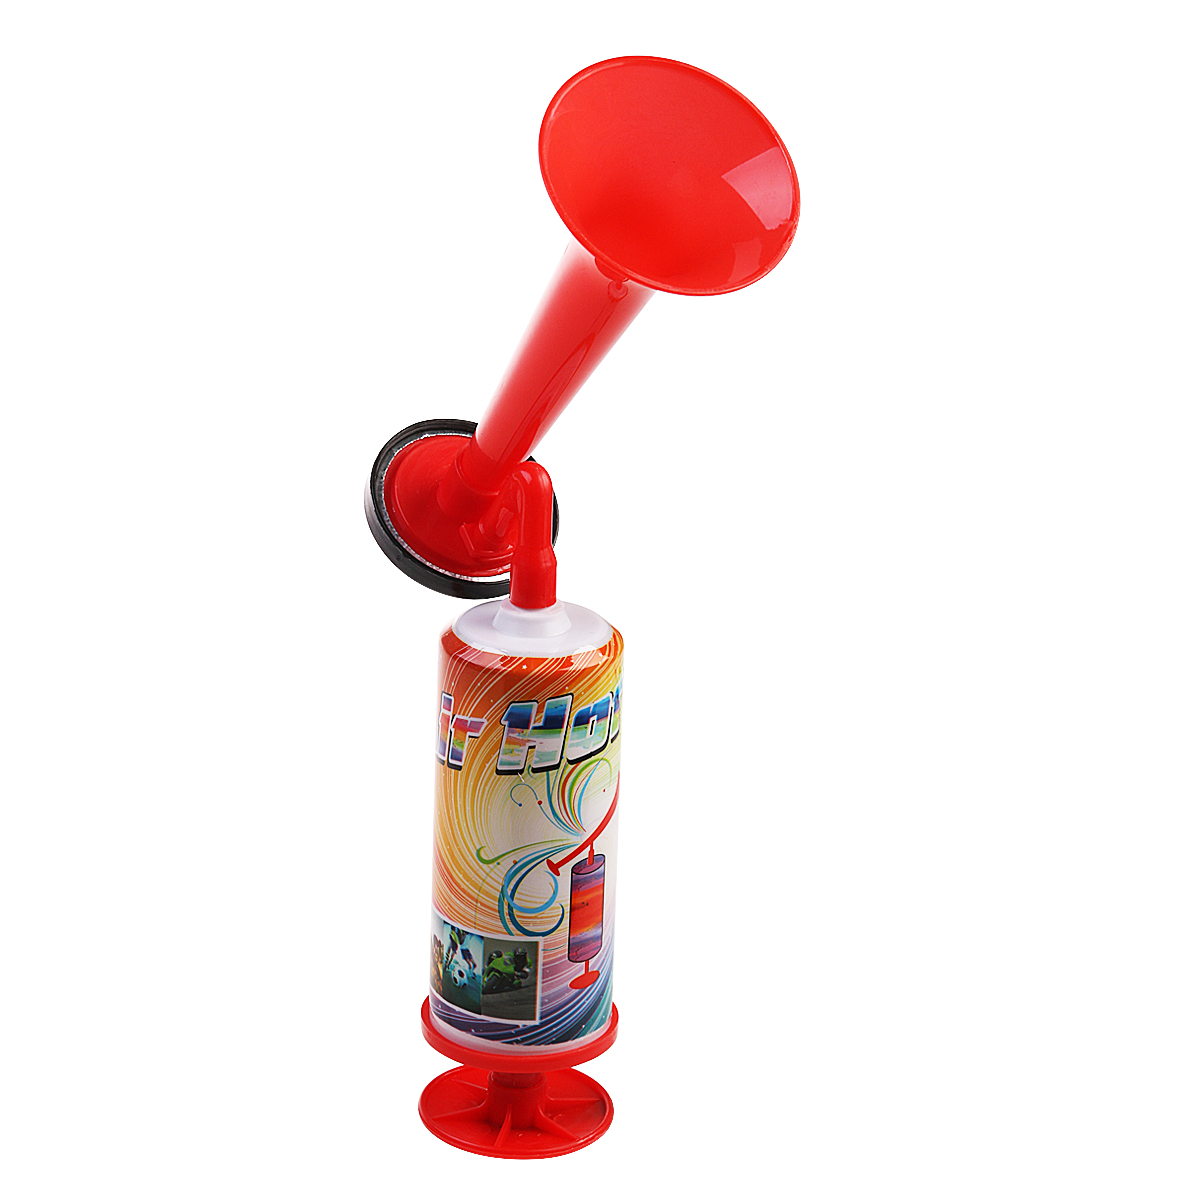 Hand Held Large Air Horn Pump Loud Noise Maker Safety Parties Sports Events (Random Color)